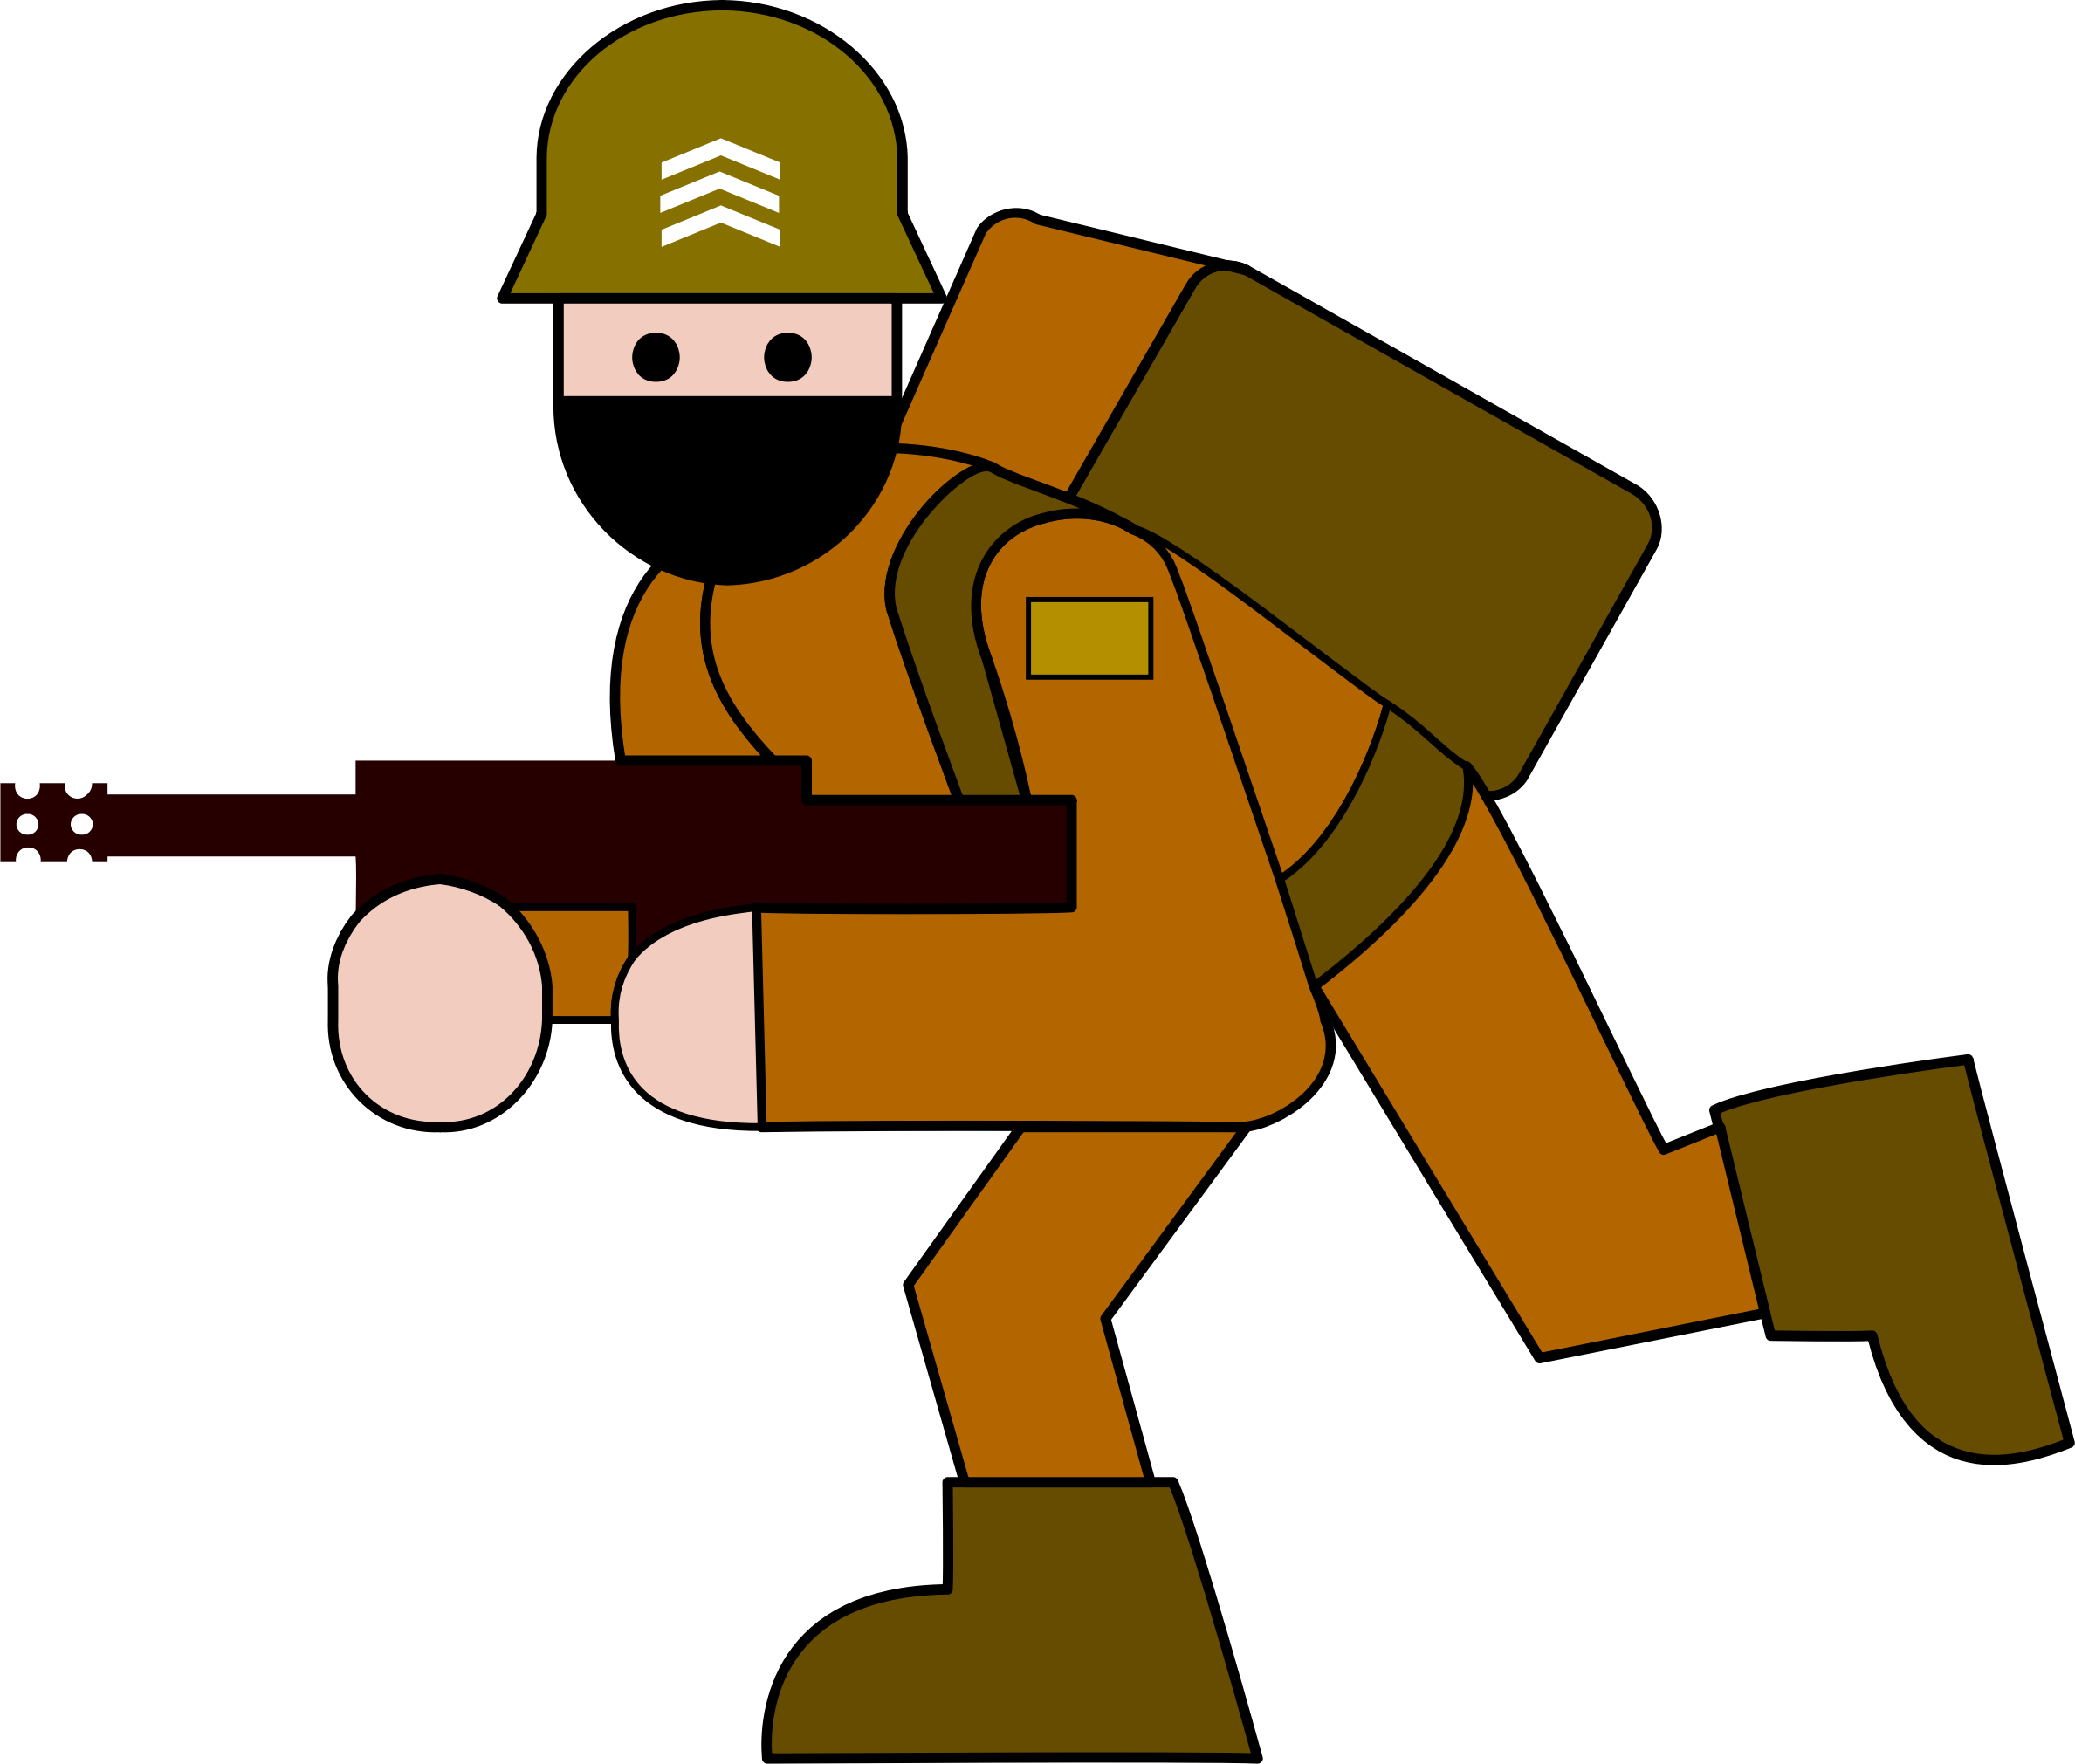 Soldier big image png. Military clipart soilder